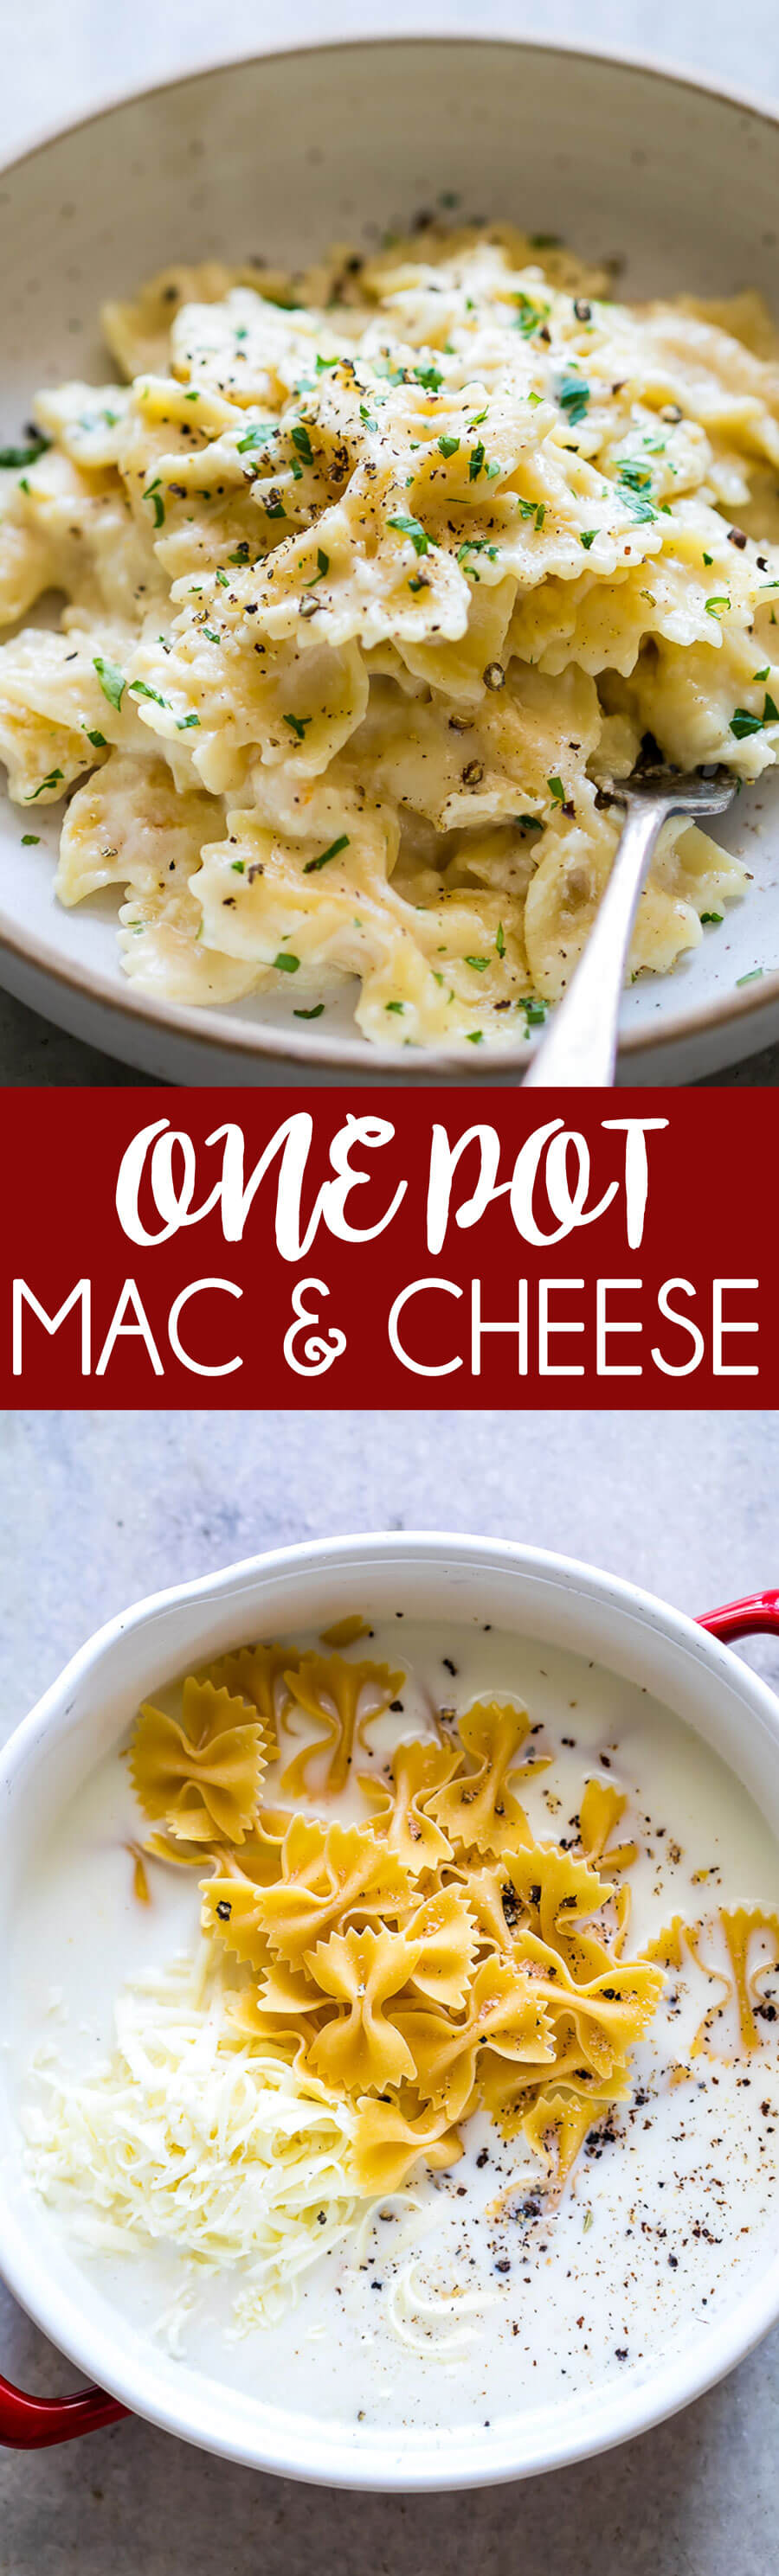 Easy one pot mac and cheese with bowtie pasta, this is one of the easiest and tastiest